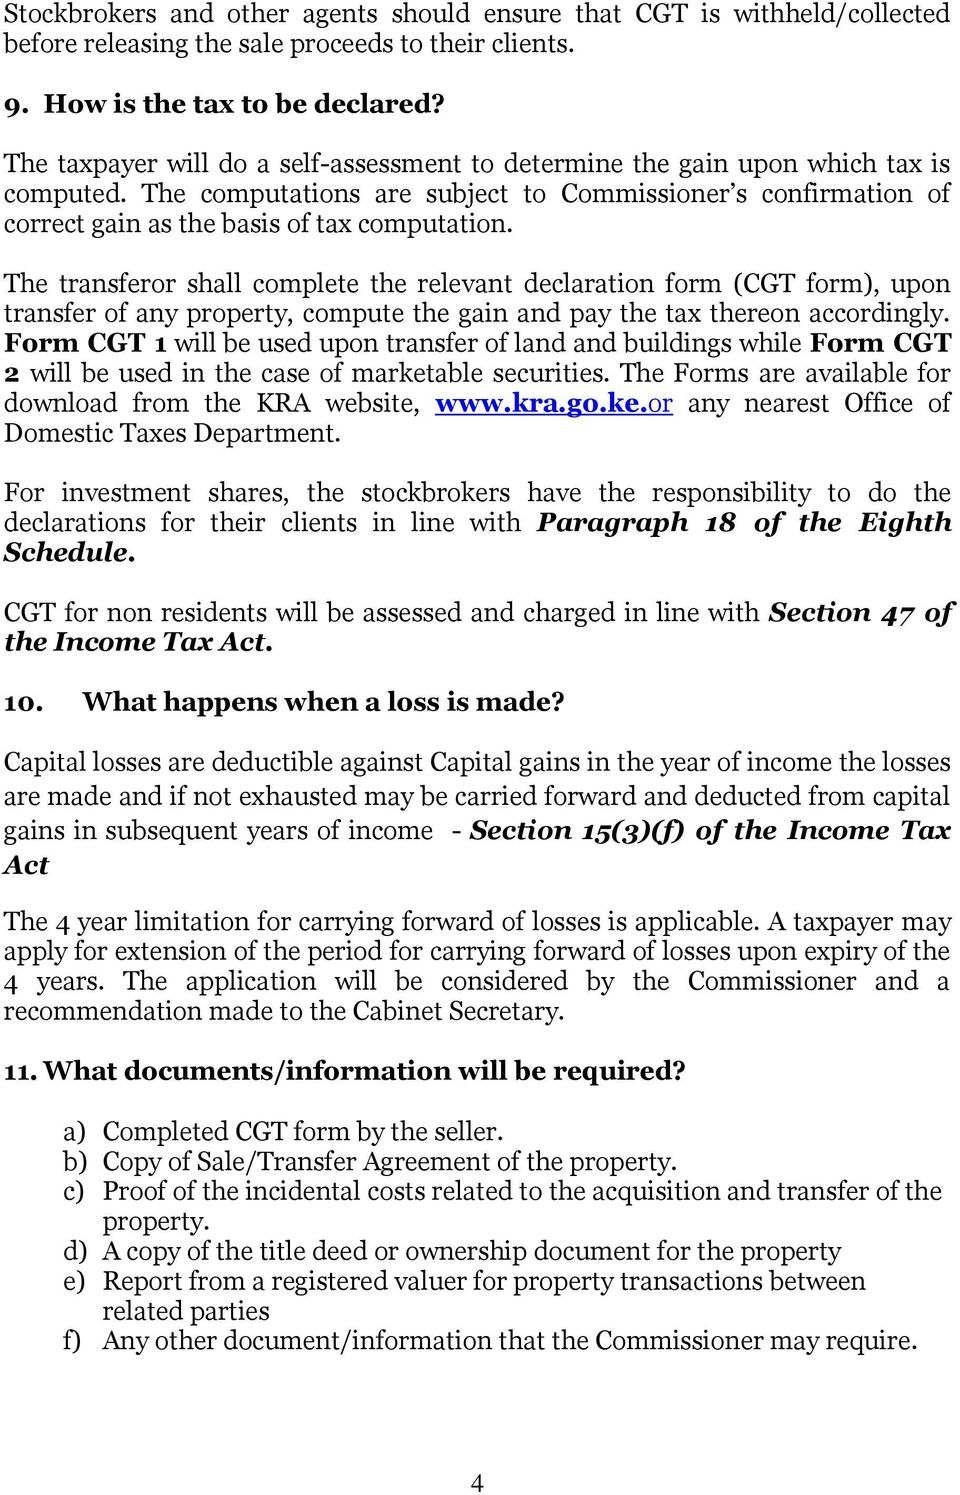 The transferor shall complete the relevant declaration form (CGT form), upon transfer of any property, compute the gain and pay the tax thereon accordingly.